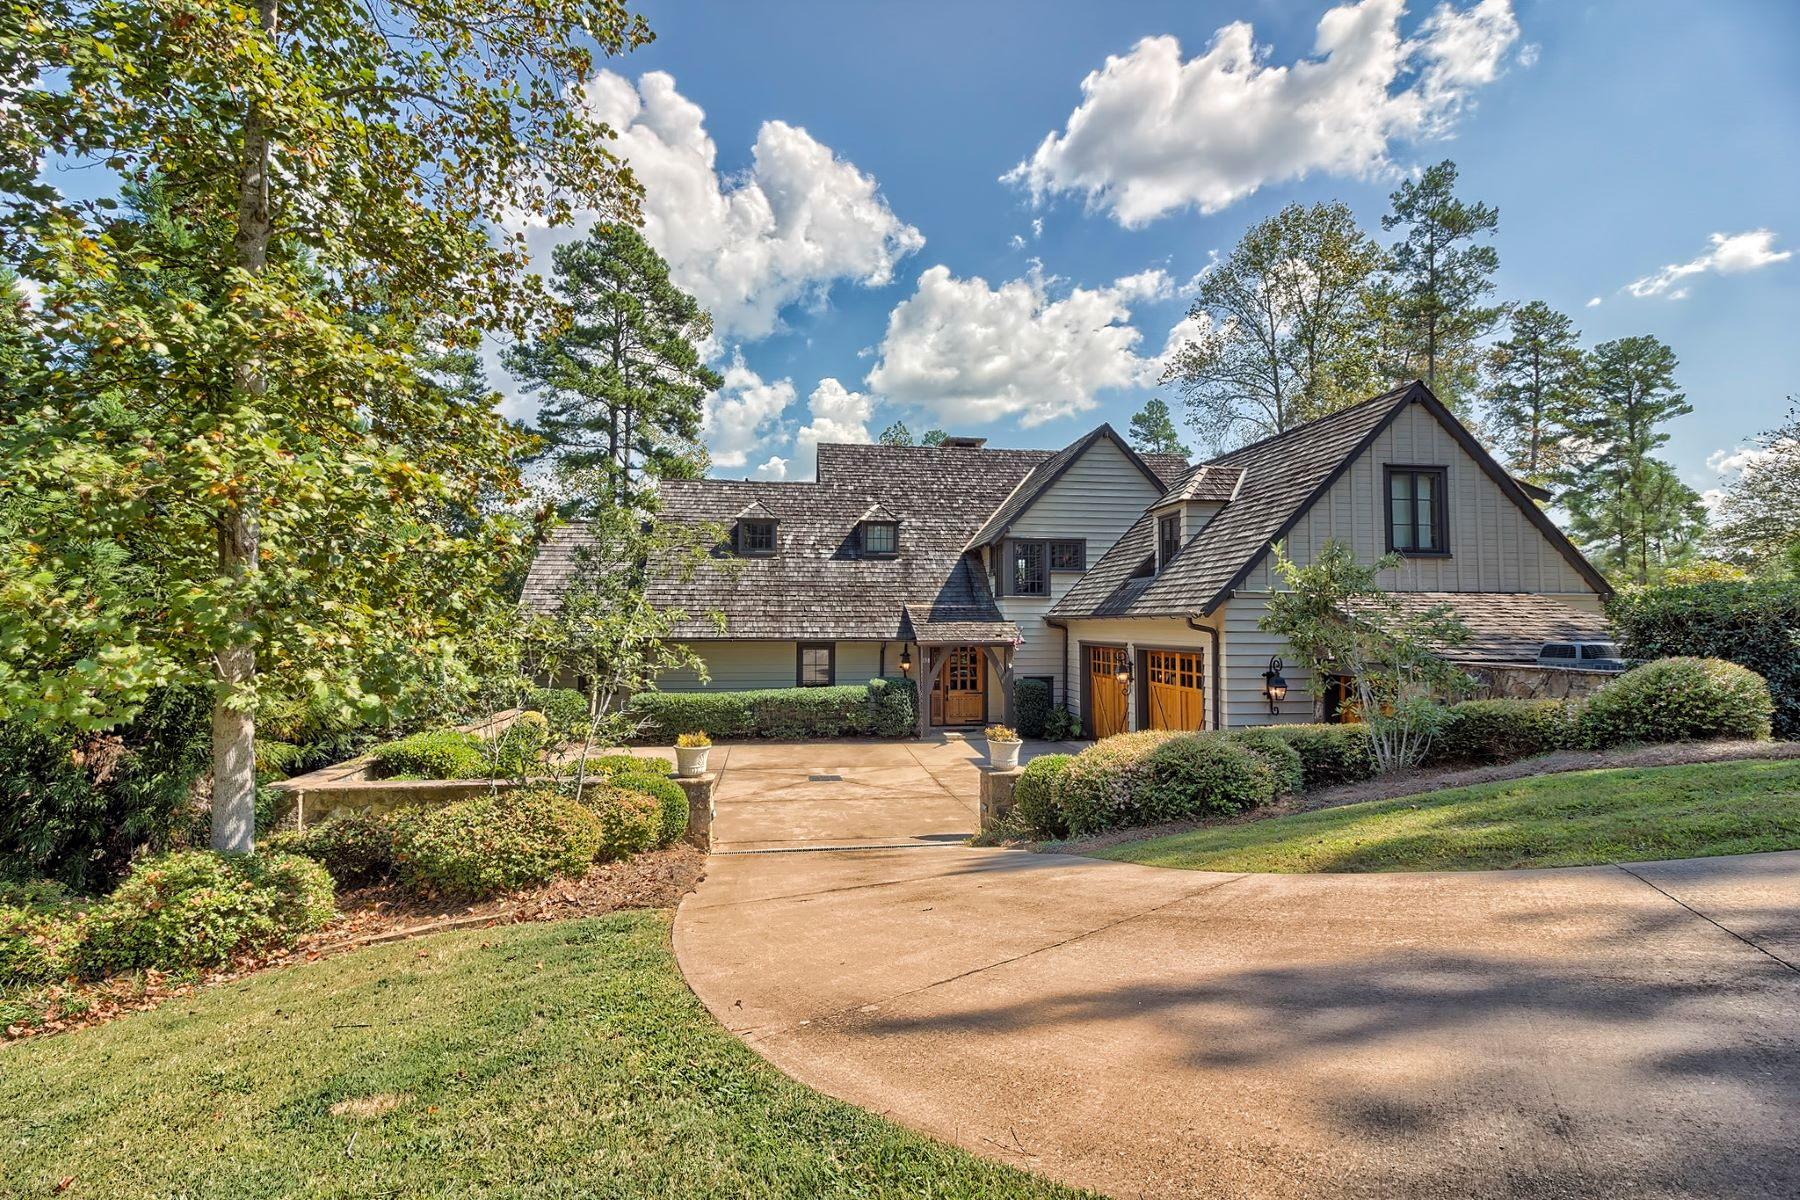 独户住宅 为 销售 在 Perfect Marriage of Lakehouse Living & Custom Craftsmanship 138 N. Lake Drive, The Reserve At Lake Keowee, Sunset, 南卡罗来纳州, 29685 美国